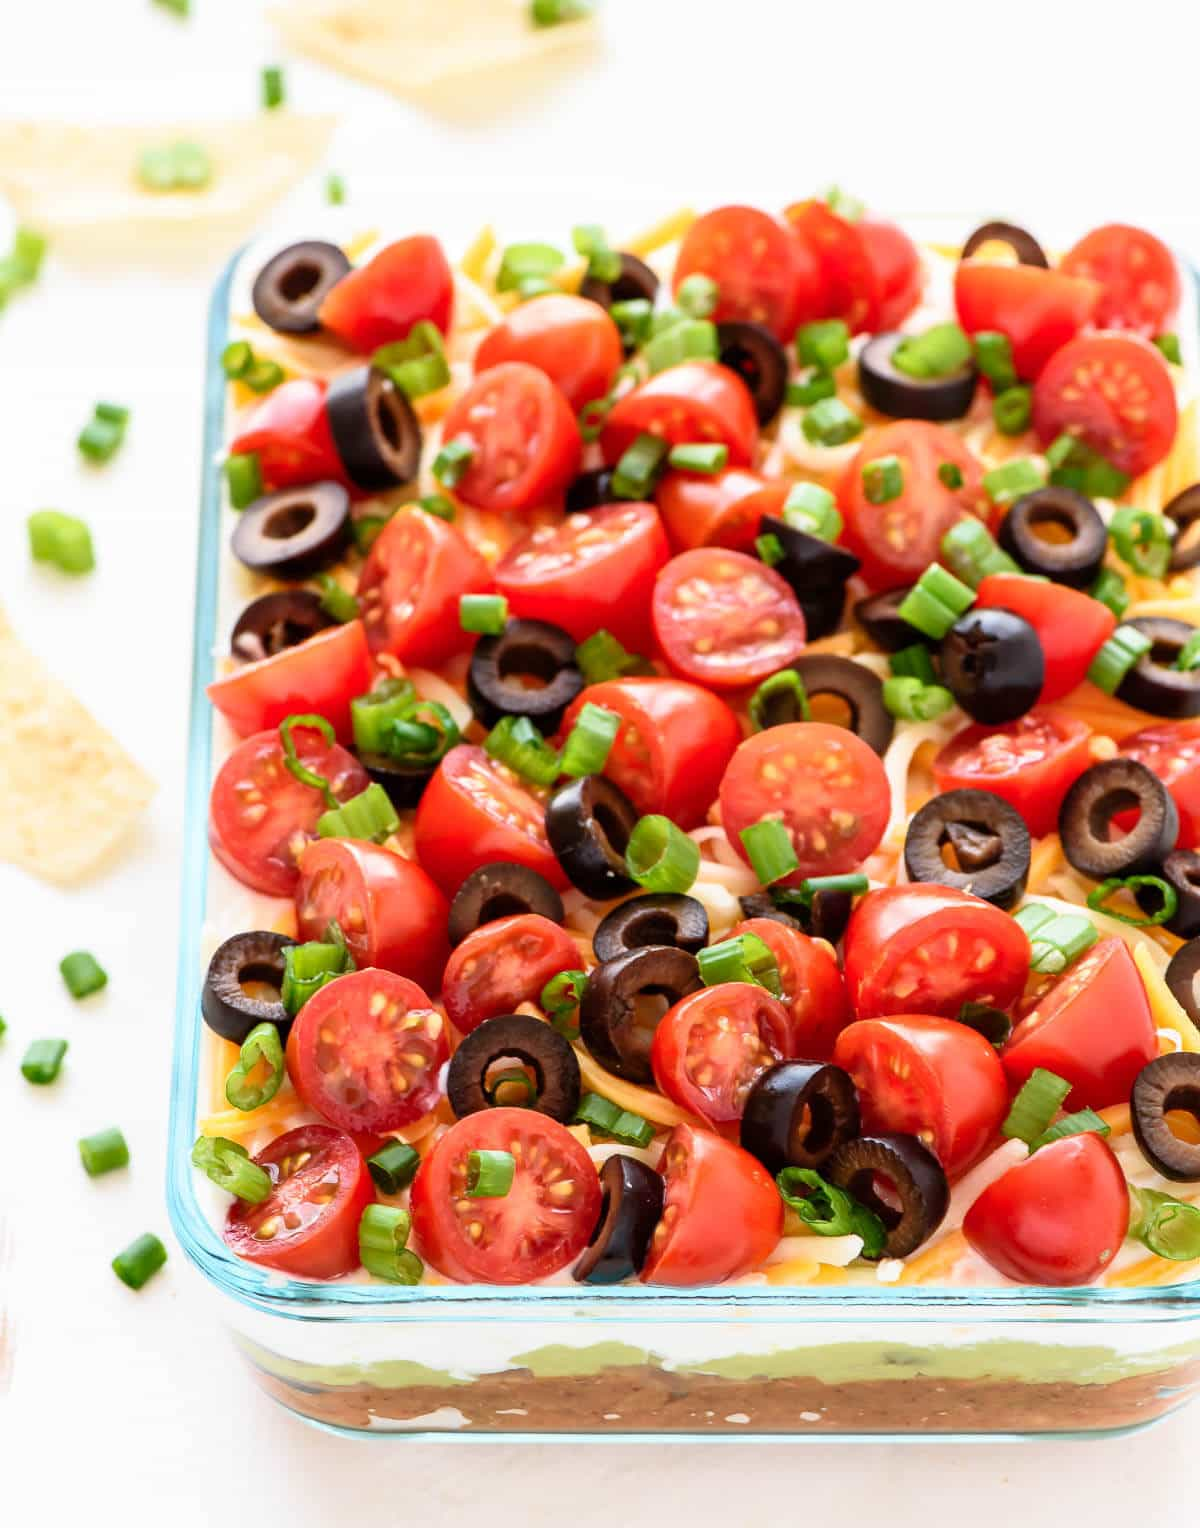 Bring this classic 7 Layer Taco Dip to your next party! Made with fresh ingredients, it's healthy but still tastes indulgent. Great for football, game watches or a potluck!